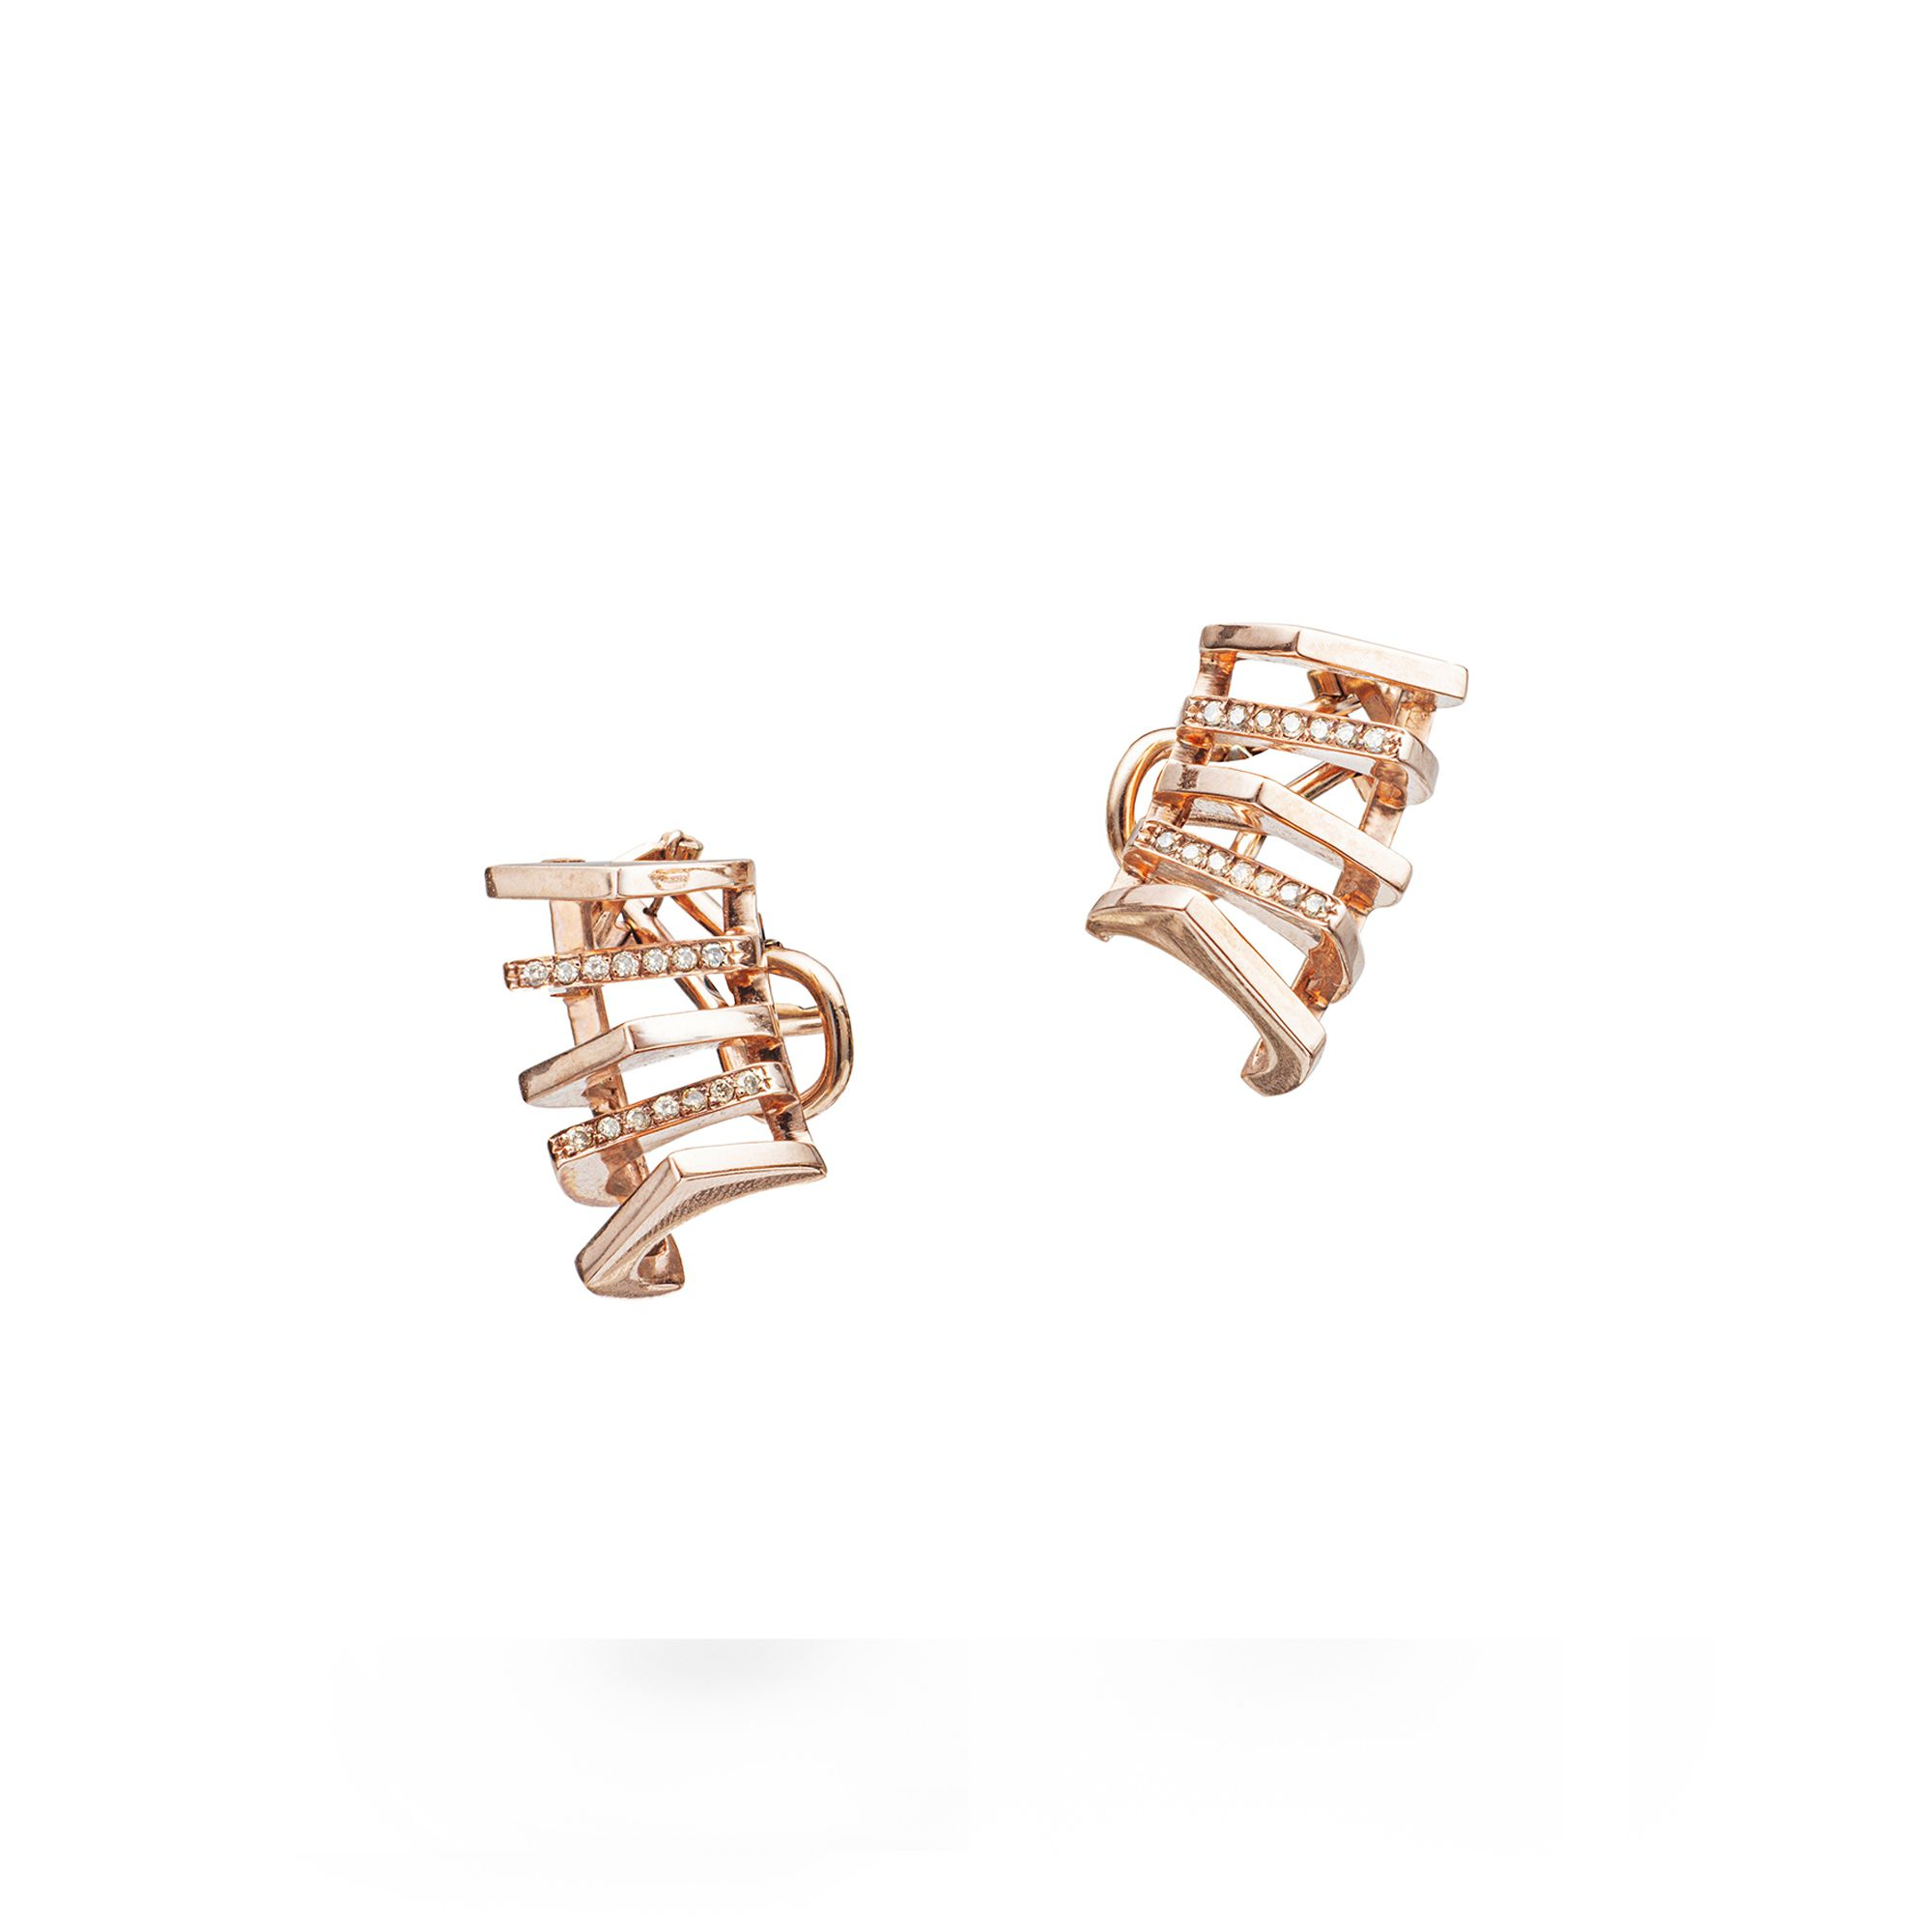 'Congiunzioni' 5 element earrings Rose gold earrings with champagne diamonds